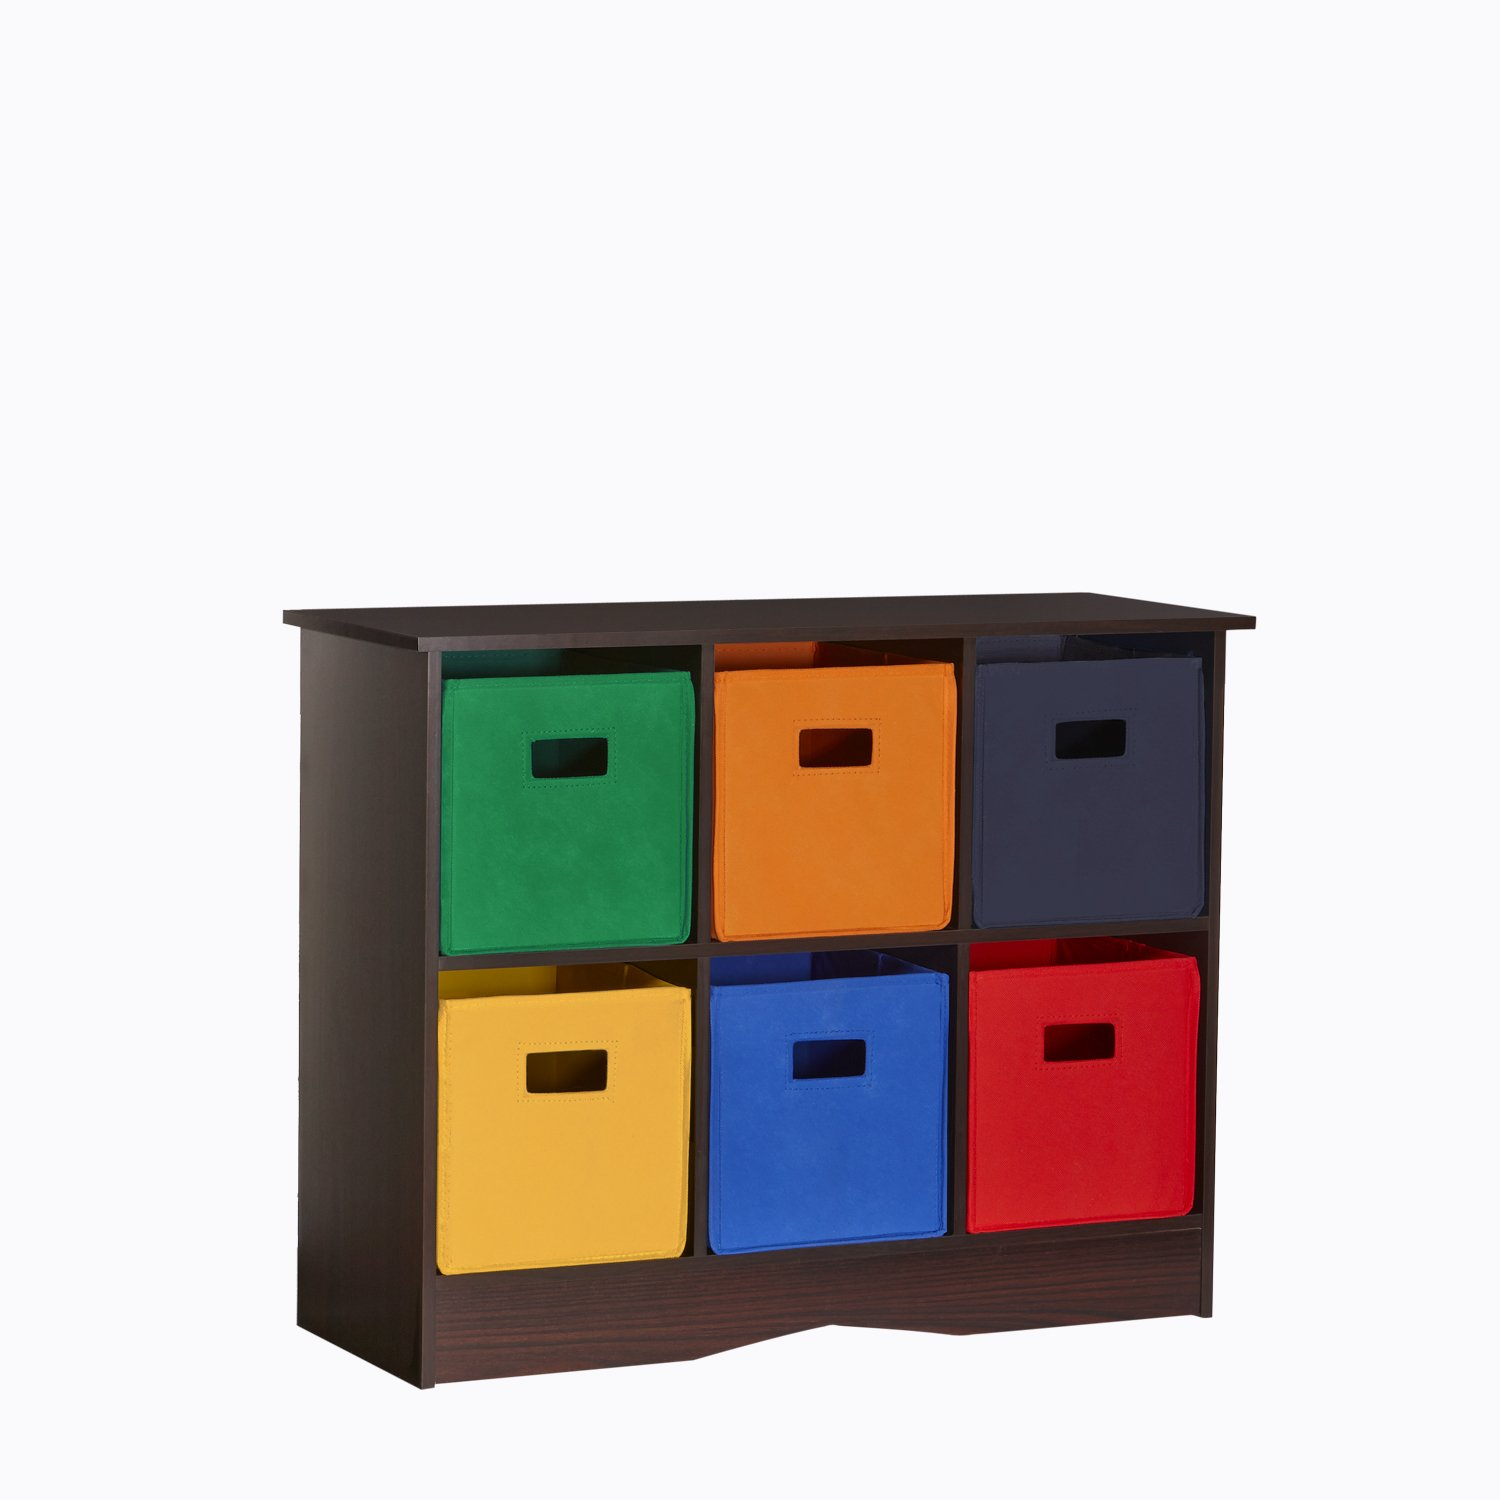 Amazon.com: RiverRidge Kids 6 Bin Storage Cabinet, Espresso ...